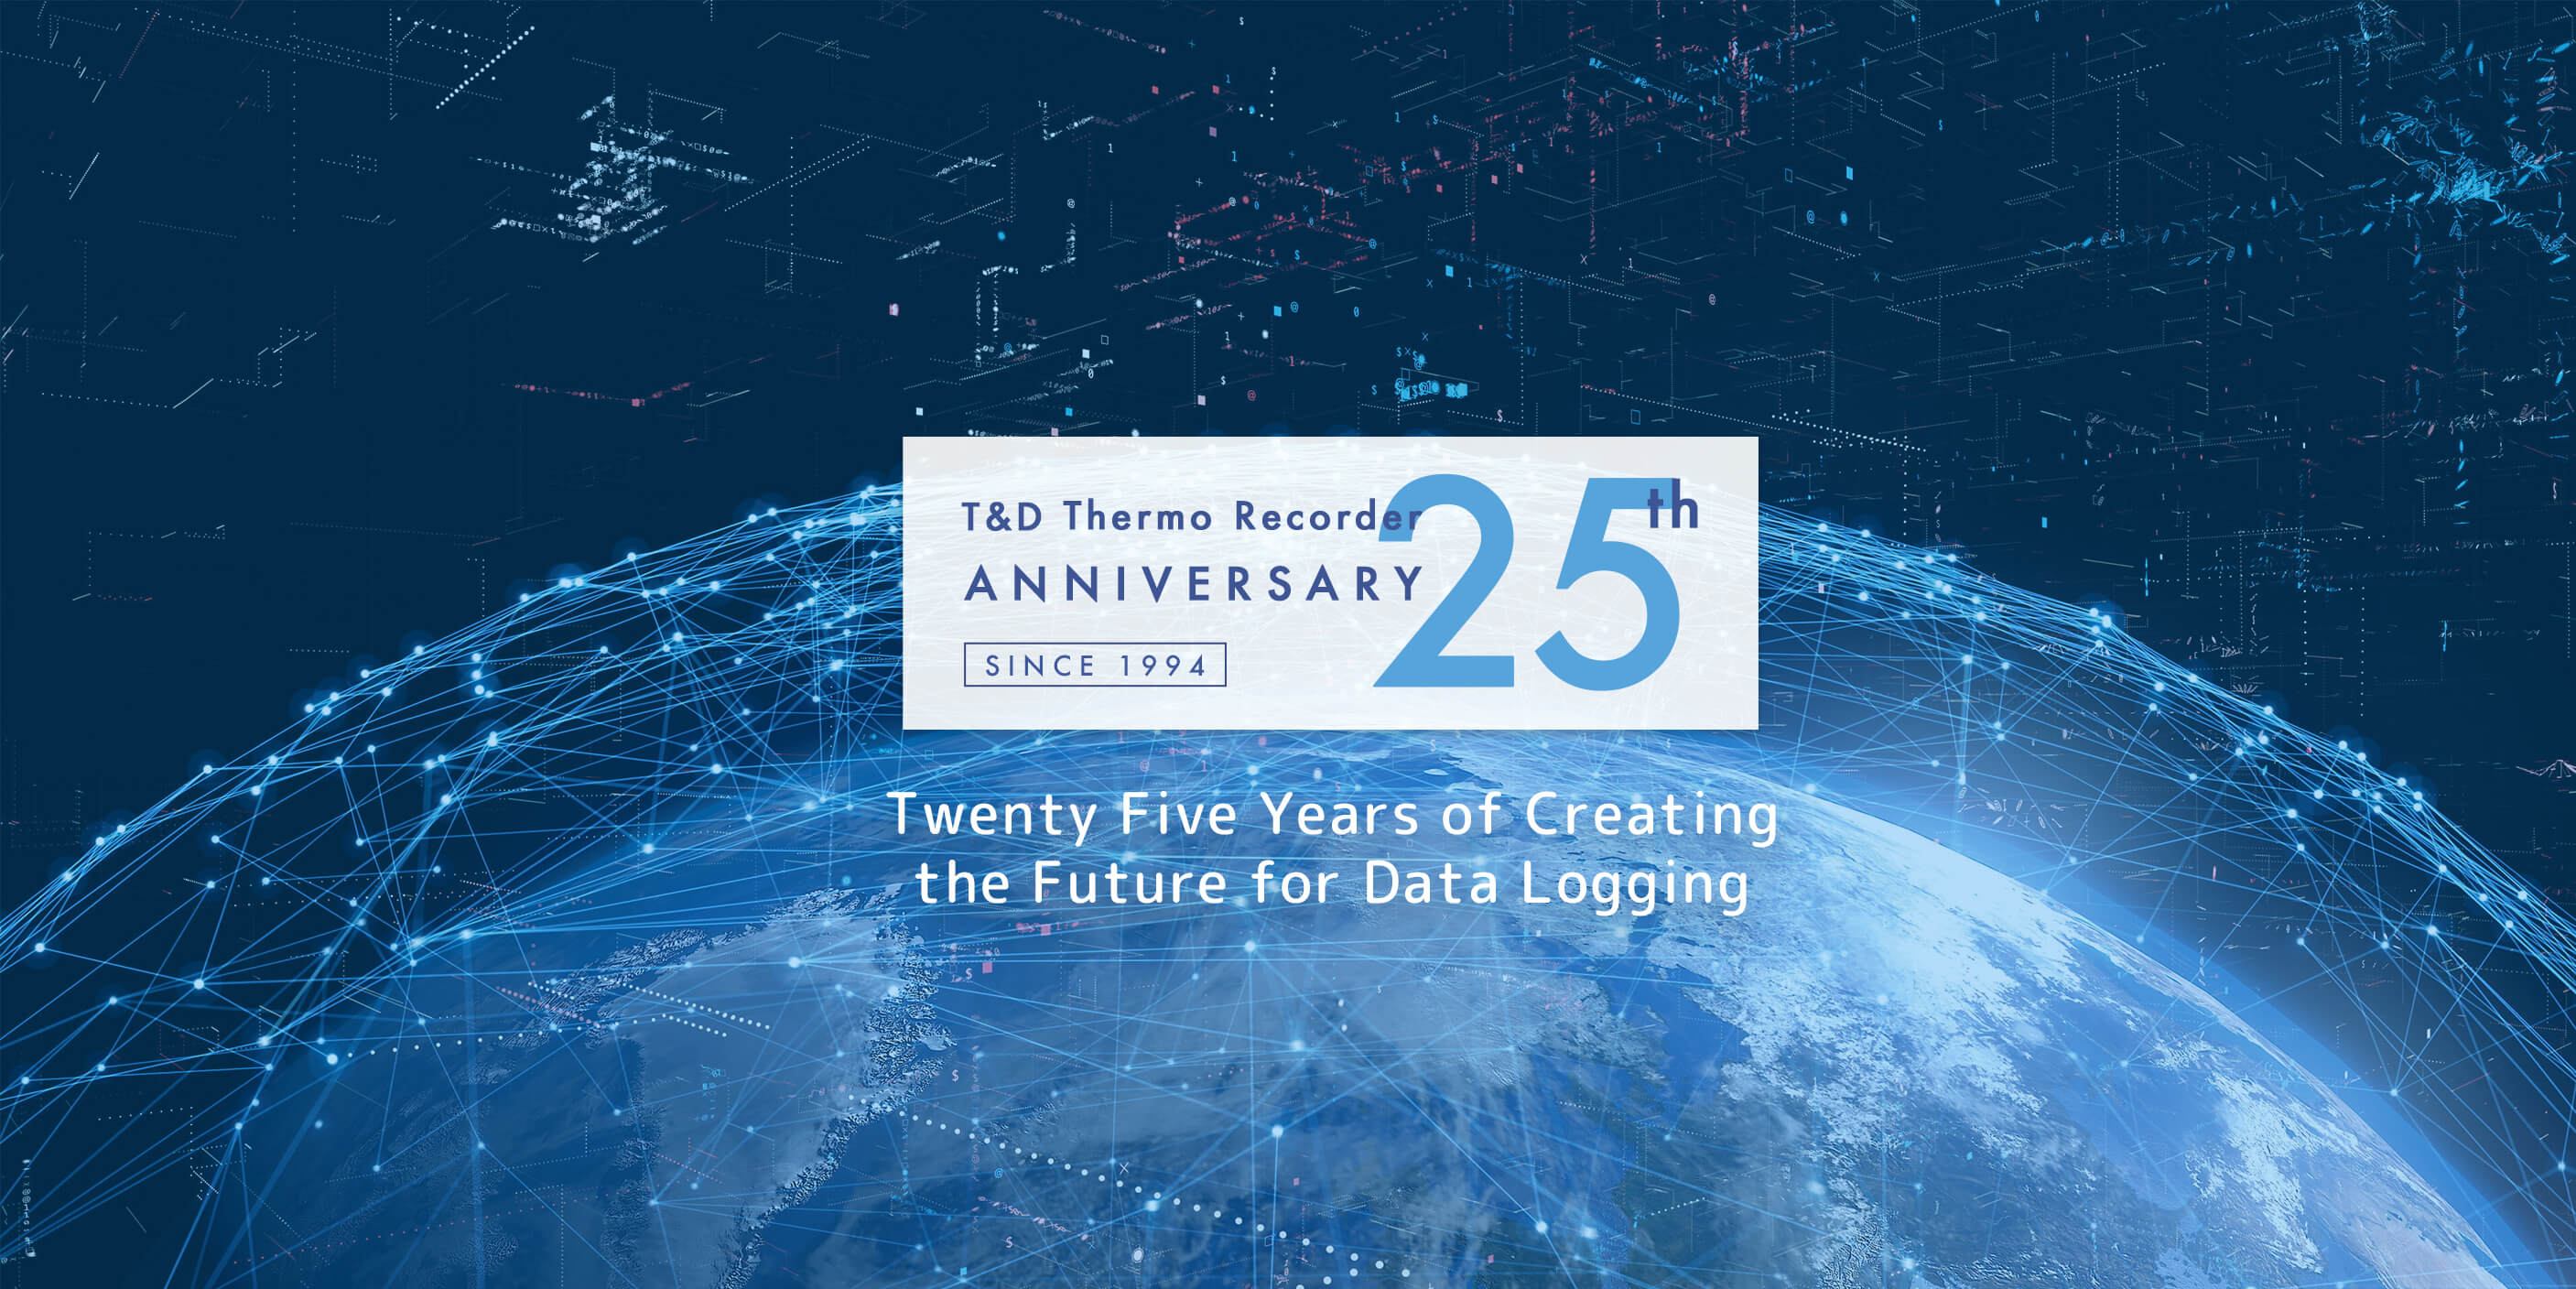 T&D Thermo Recorder Anniversary 25th